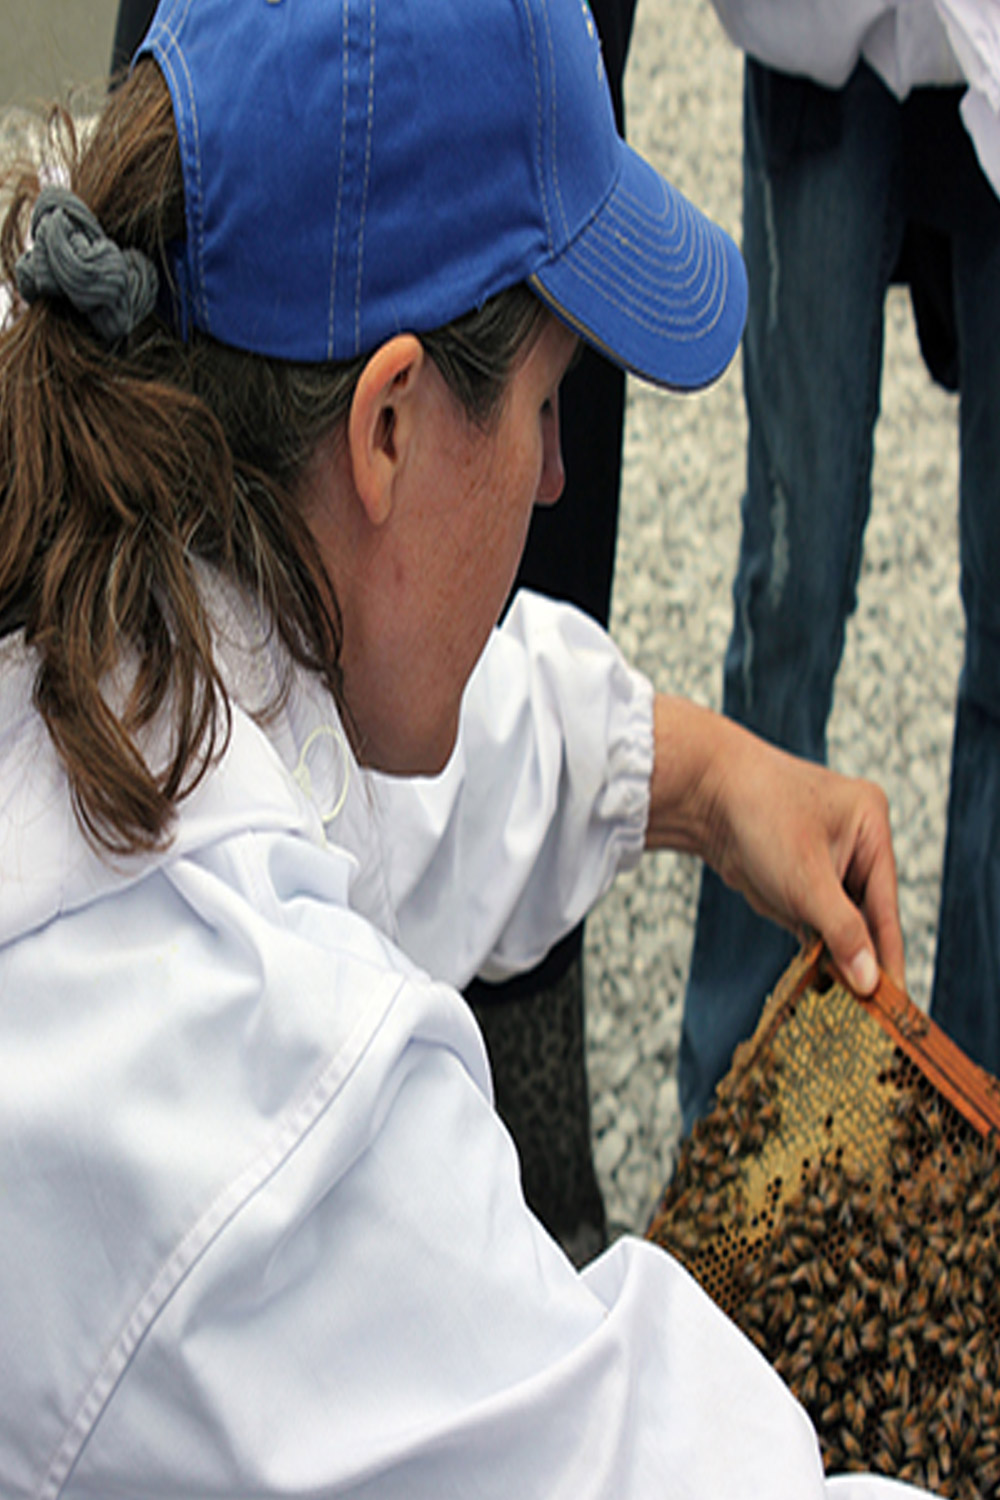 State Apiarist Tammy Horn examing honey produced on a reclaimed mine site